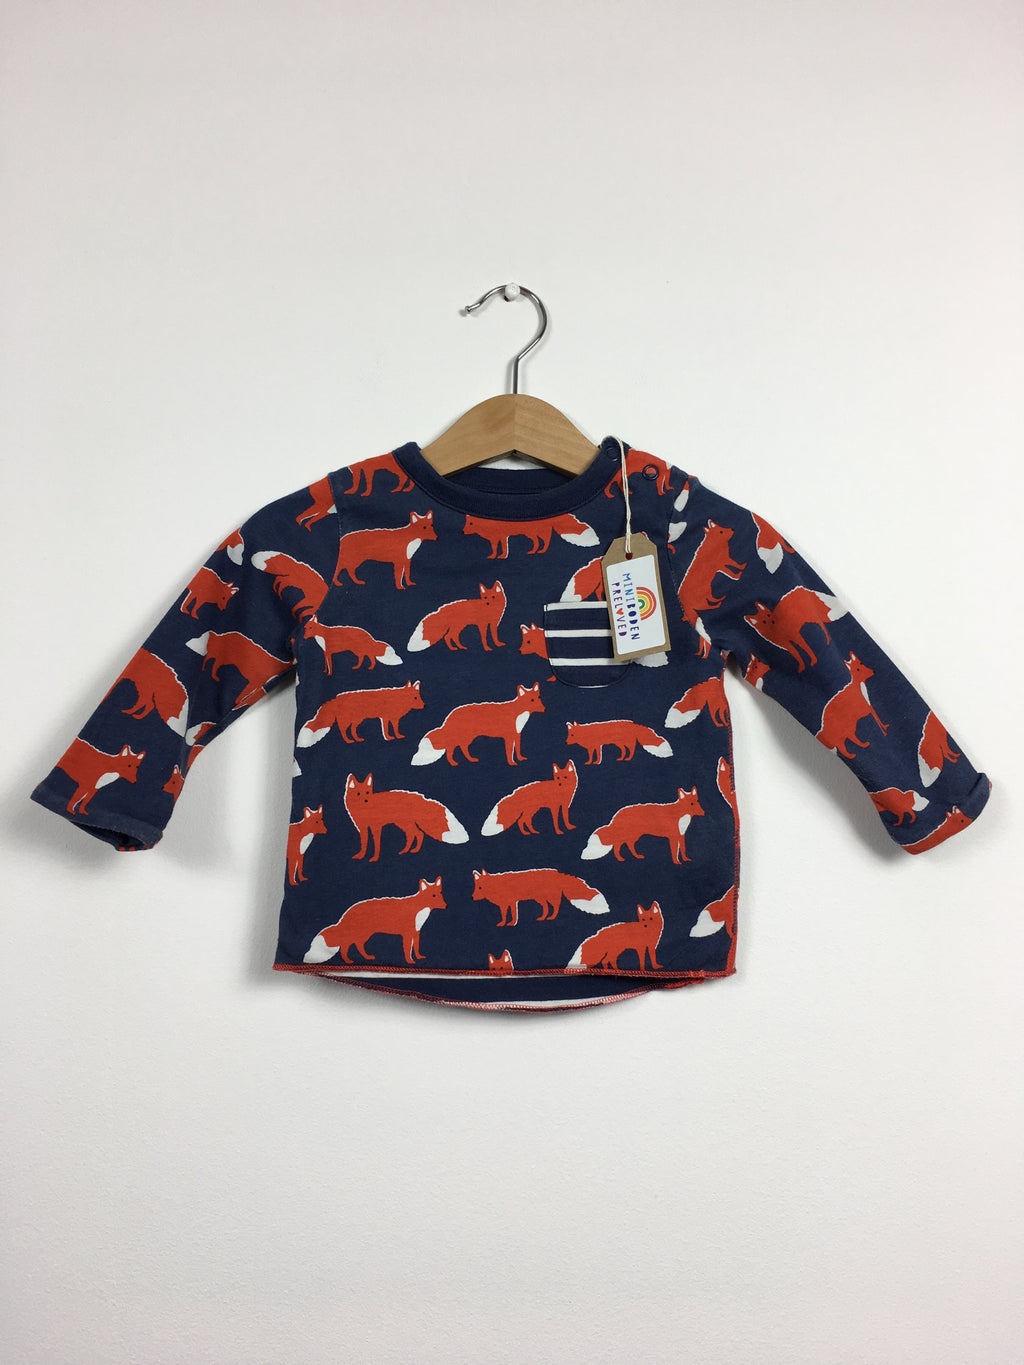 Fox Print Reversible Top (Age 3-6 Months)